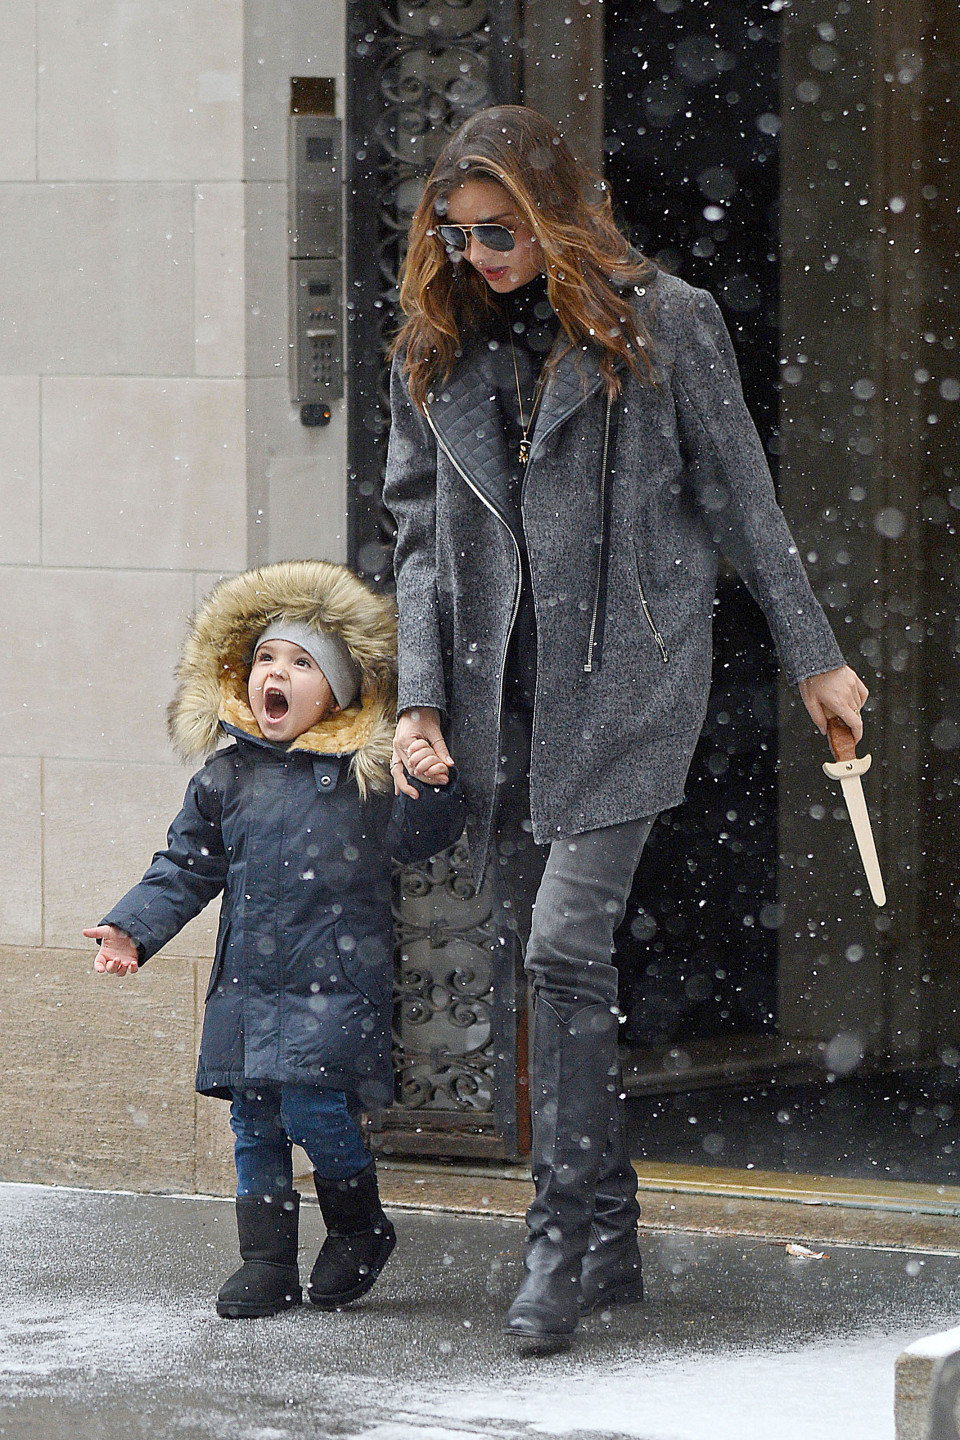 *EXCLUSIVE* New York, NY - Miranda Kerr and her adorable son, Flynn step out on a snowy day in New York this afternoon.  Flynn looked very happy and excited to see the snow fall and even opened up his mouth wide to get a taste, which gave his mom a good laugh.  Miranda looked pretty covered up in grey and black and carried Flynn's toy sword in hand as the pair walked to their car.  AKM-GSI        December 14, 2013 To License These Photos, Please Contact : Steve Ginsburg (310) 505-8447 (323) 423-9397 steve@akmgsi.com sales@akmgsi.com or Maria Buda (917) 242-1505 mbuda@akmgsi.com ginsburgspalyinc@gmail.com